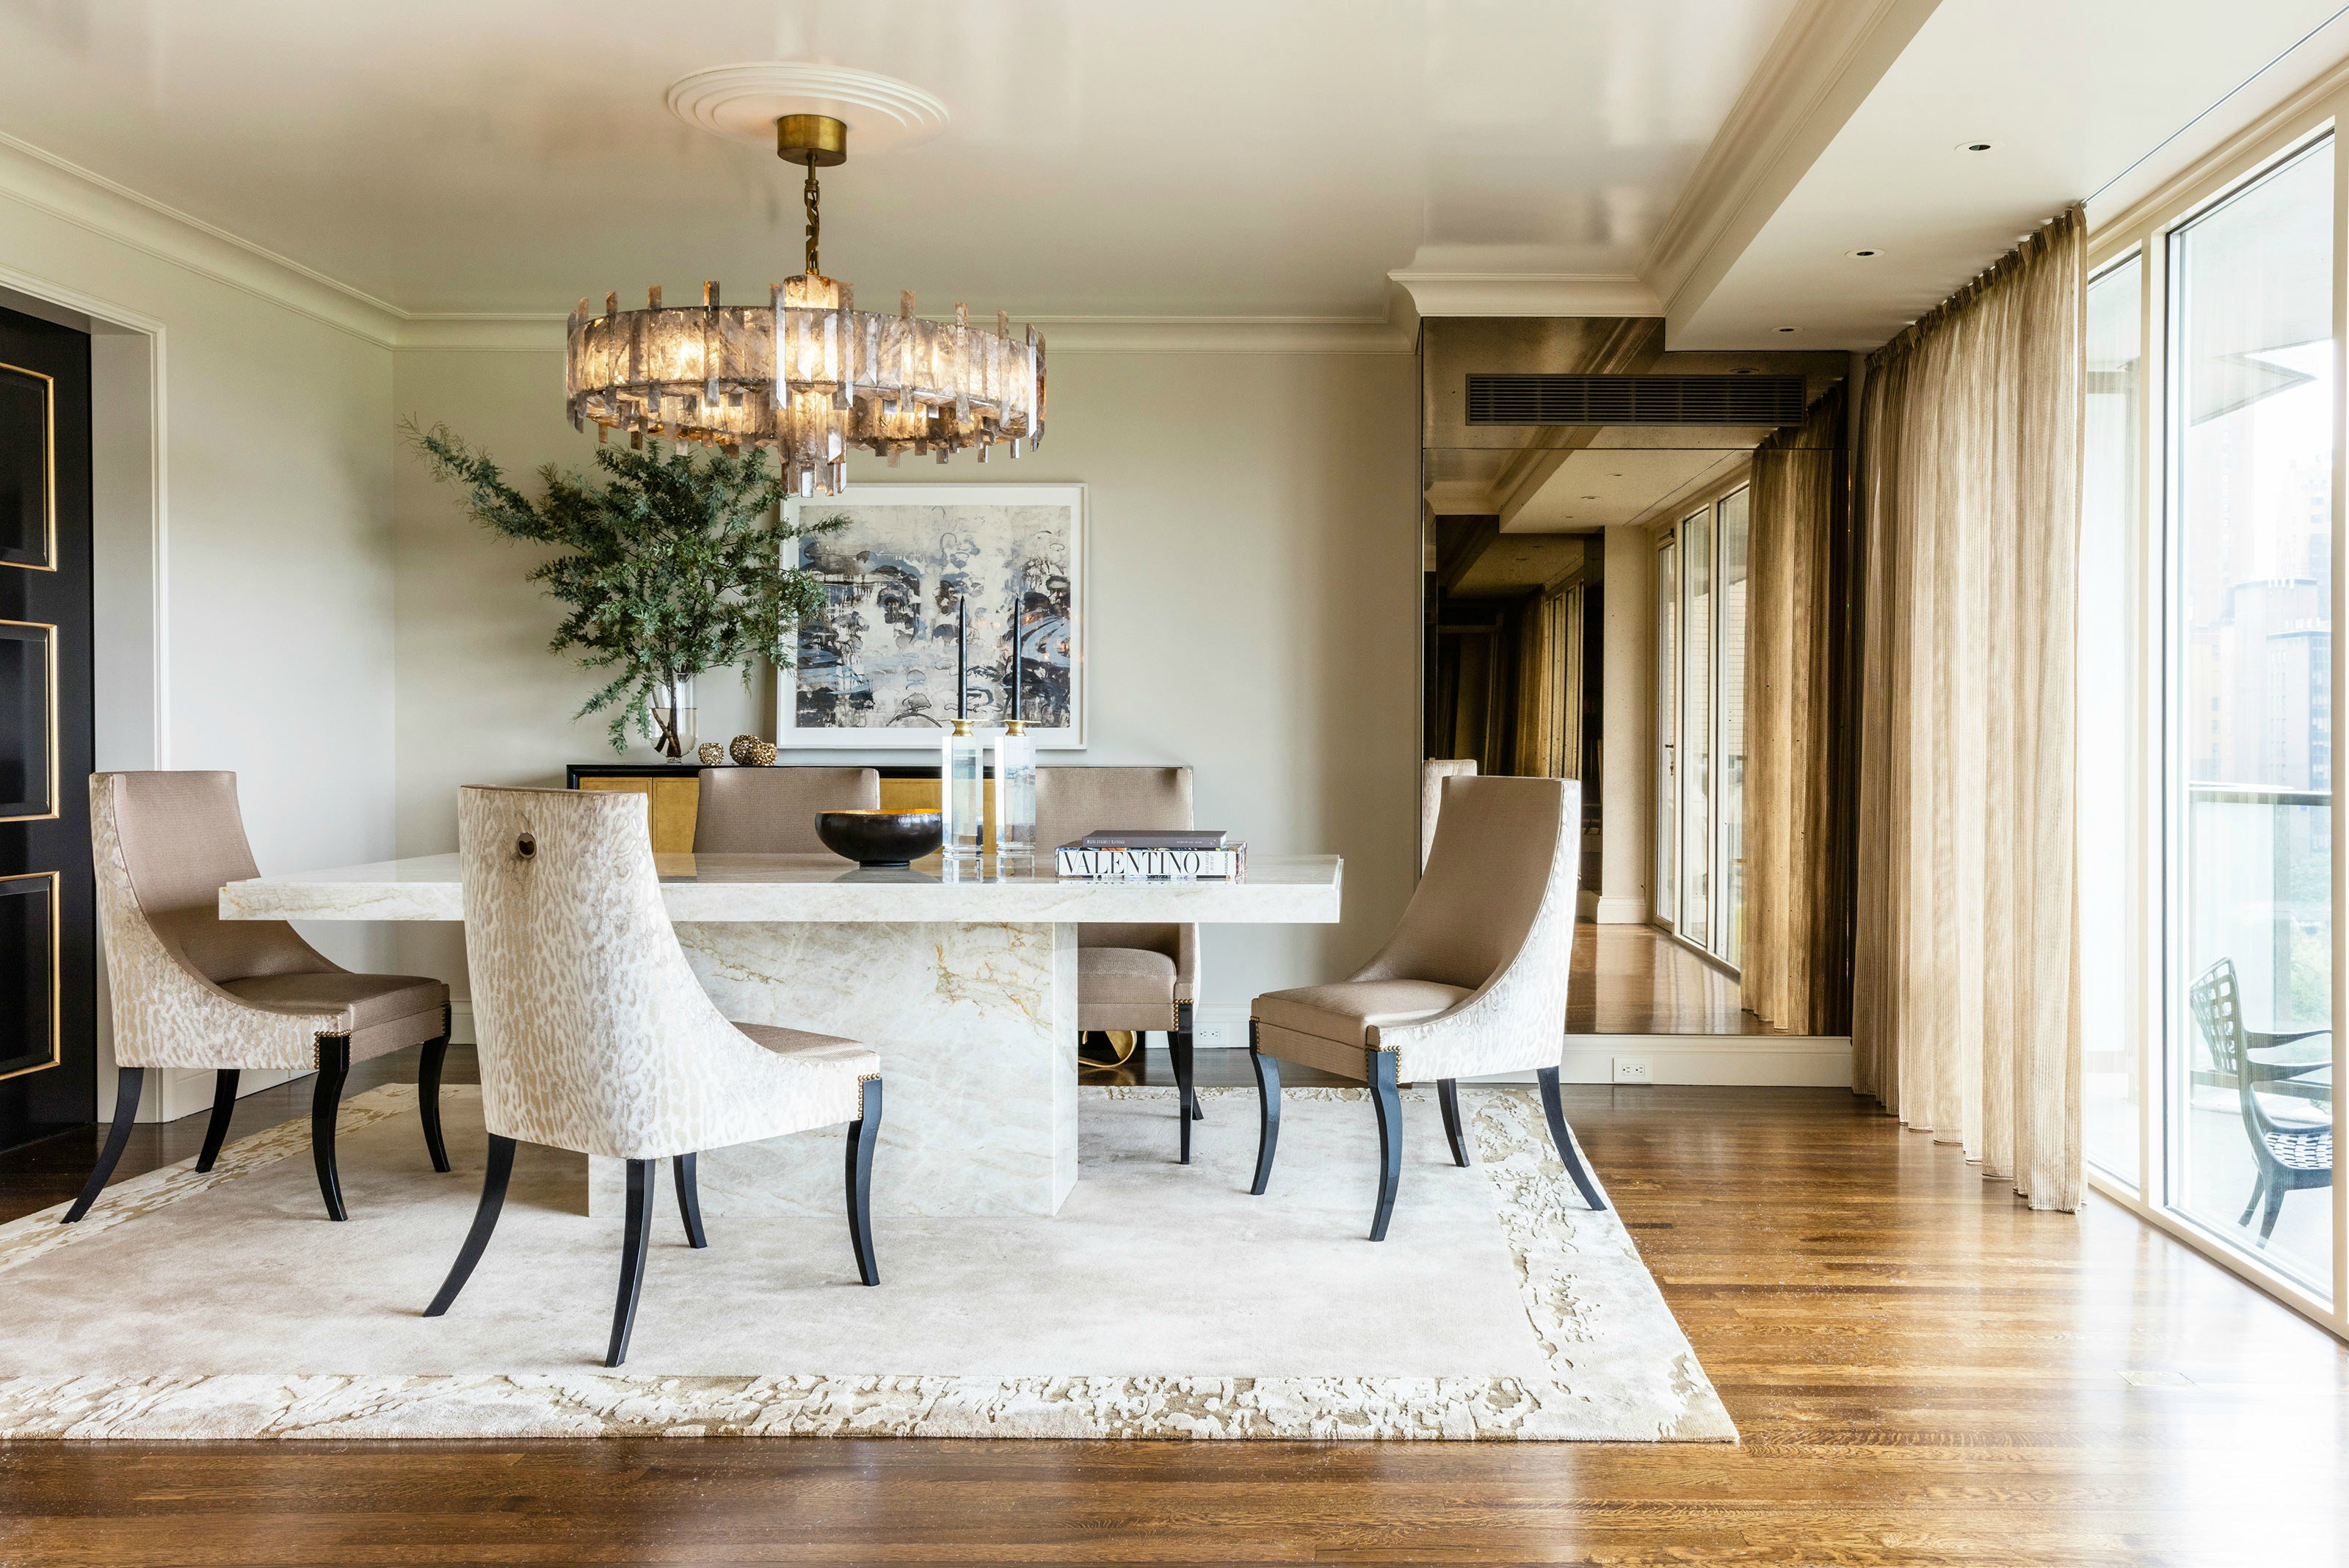 Sleek Dining Room Table Ideas You Will Want To Steal dining room table Sleek Dining Room Table Ideas You Will Want To Steal Sleek Dining Room Table Ideas You Will Want To Steal 7